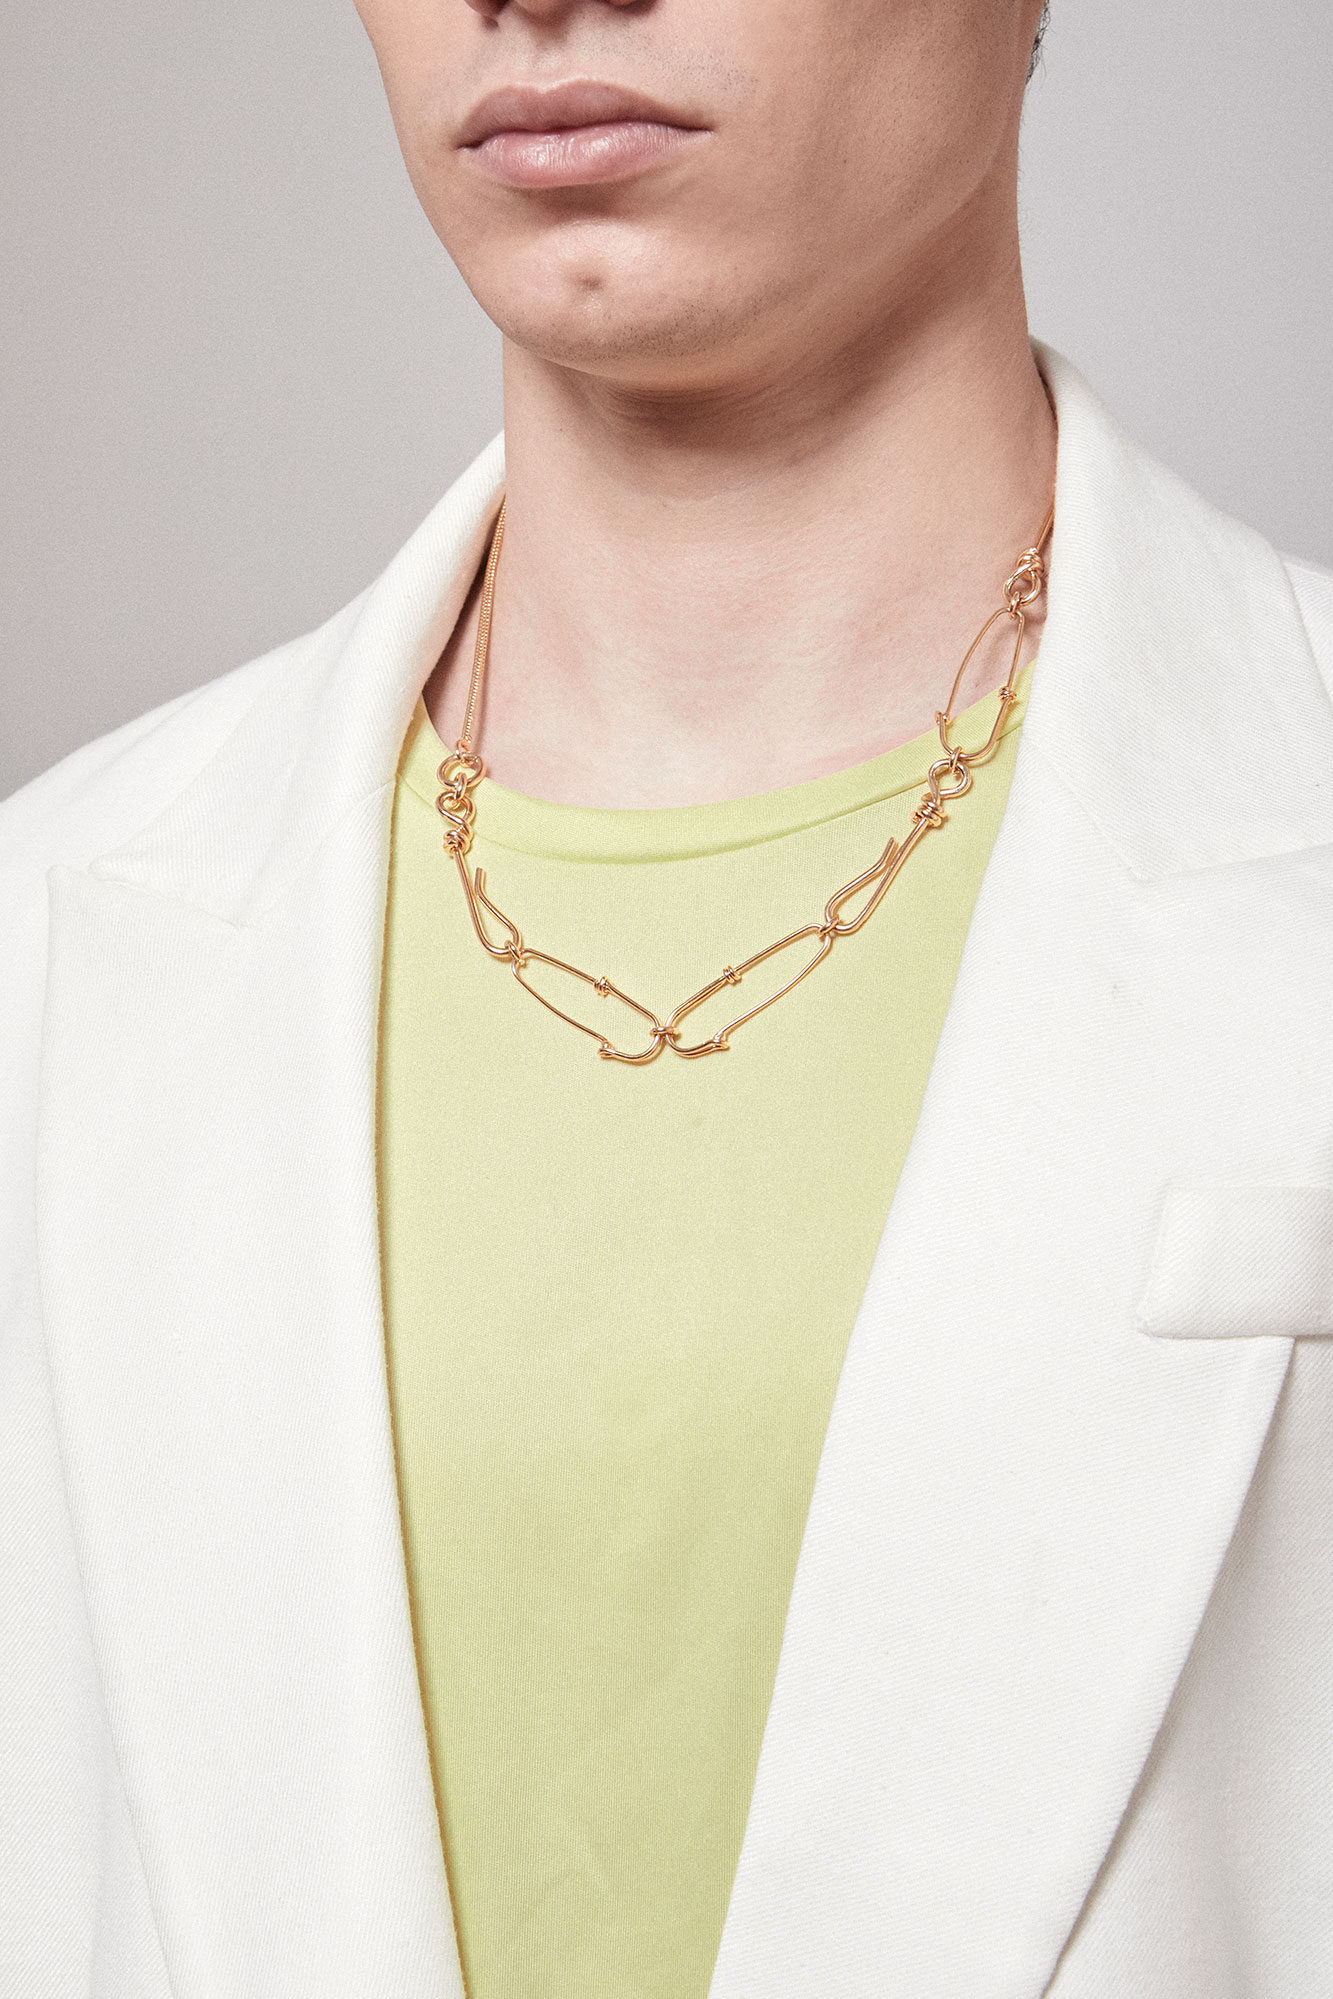 TACKLE CHAIN NECKLACE